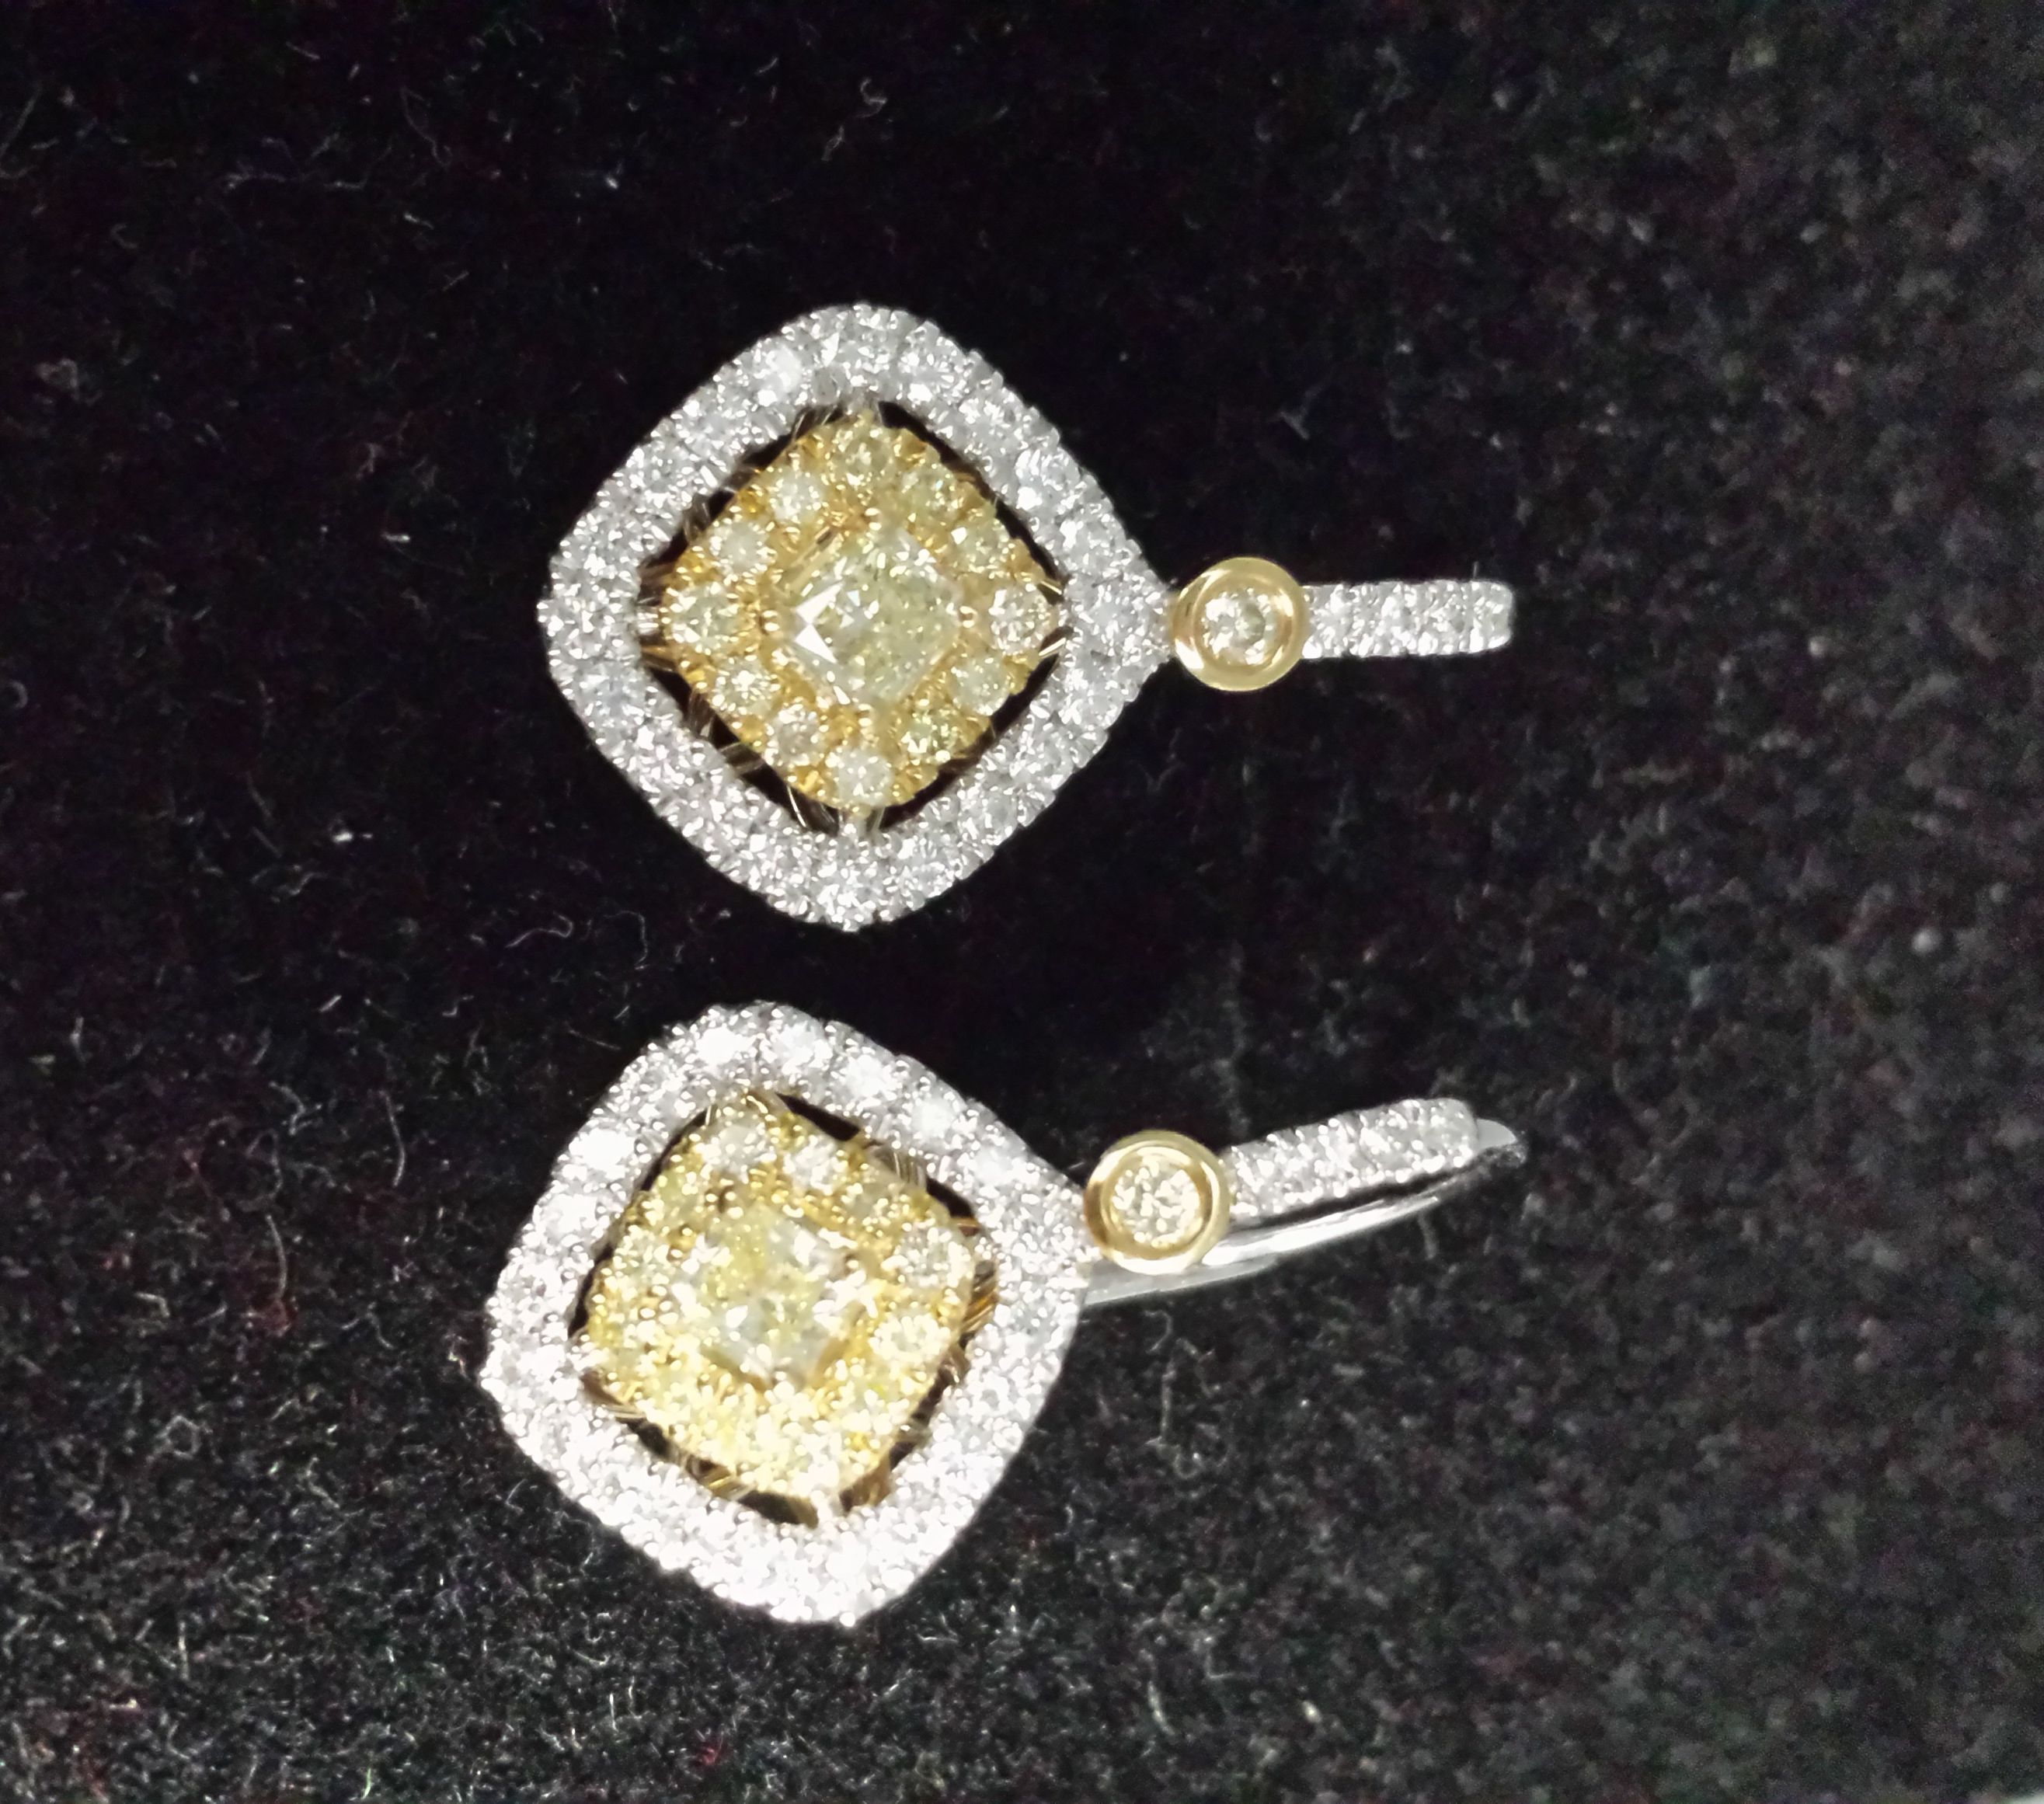 Leverback earrings in 18k with yellow diamond centers and white